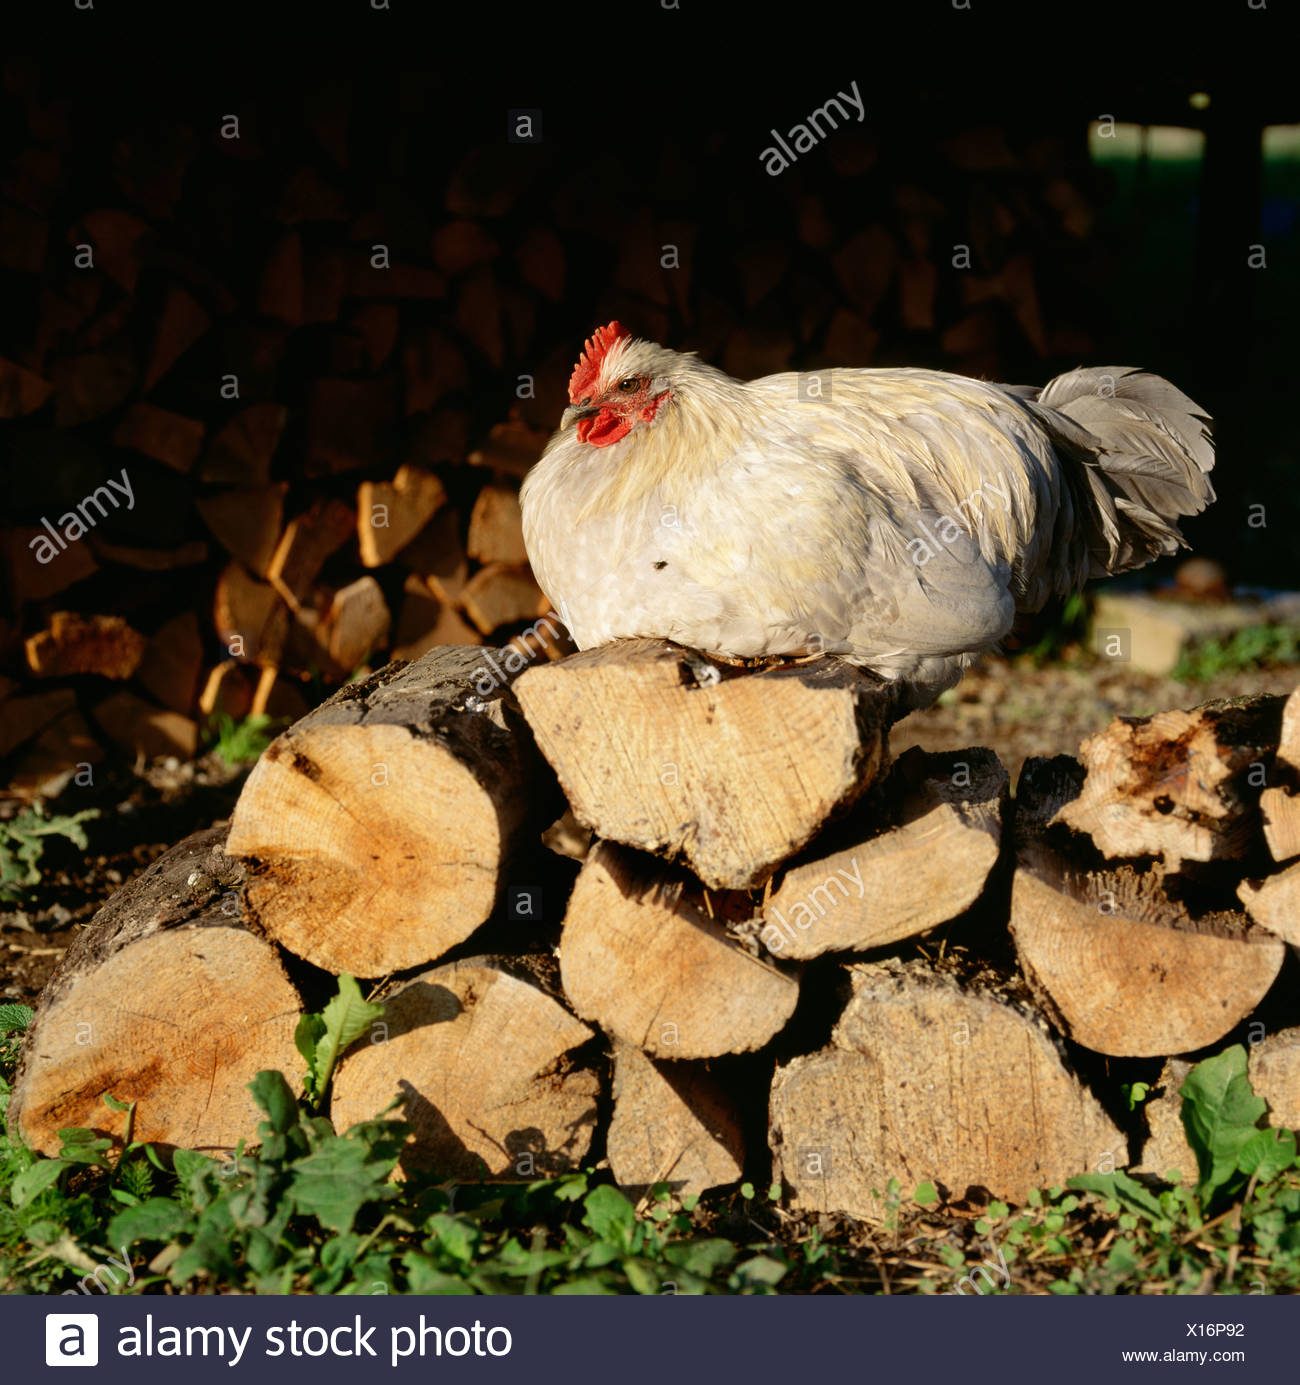 A hen in a farm, Sweden. - Stock Image